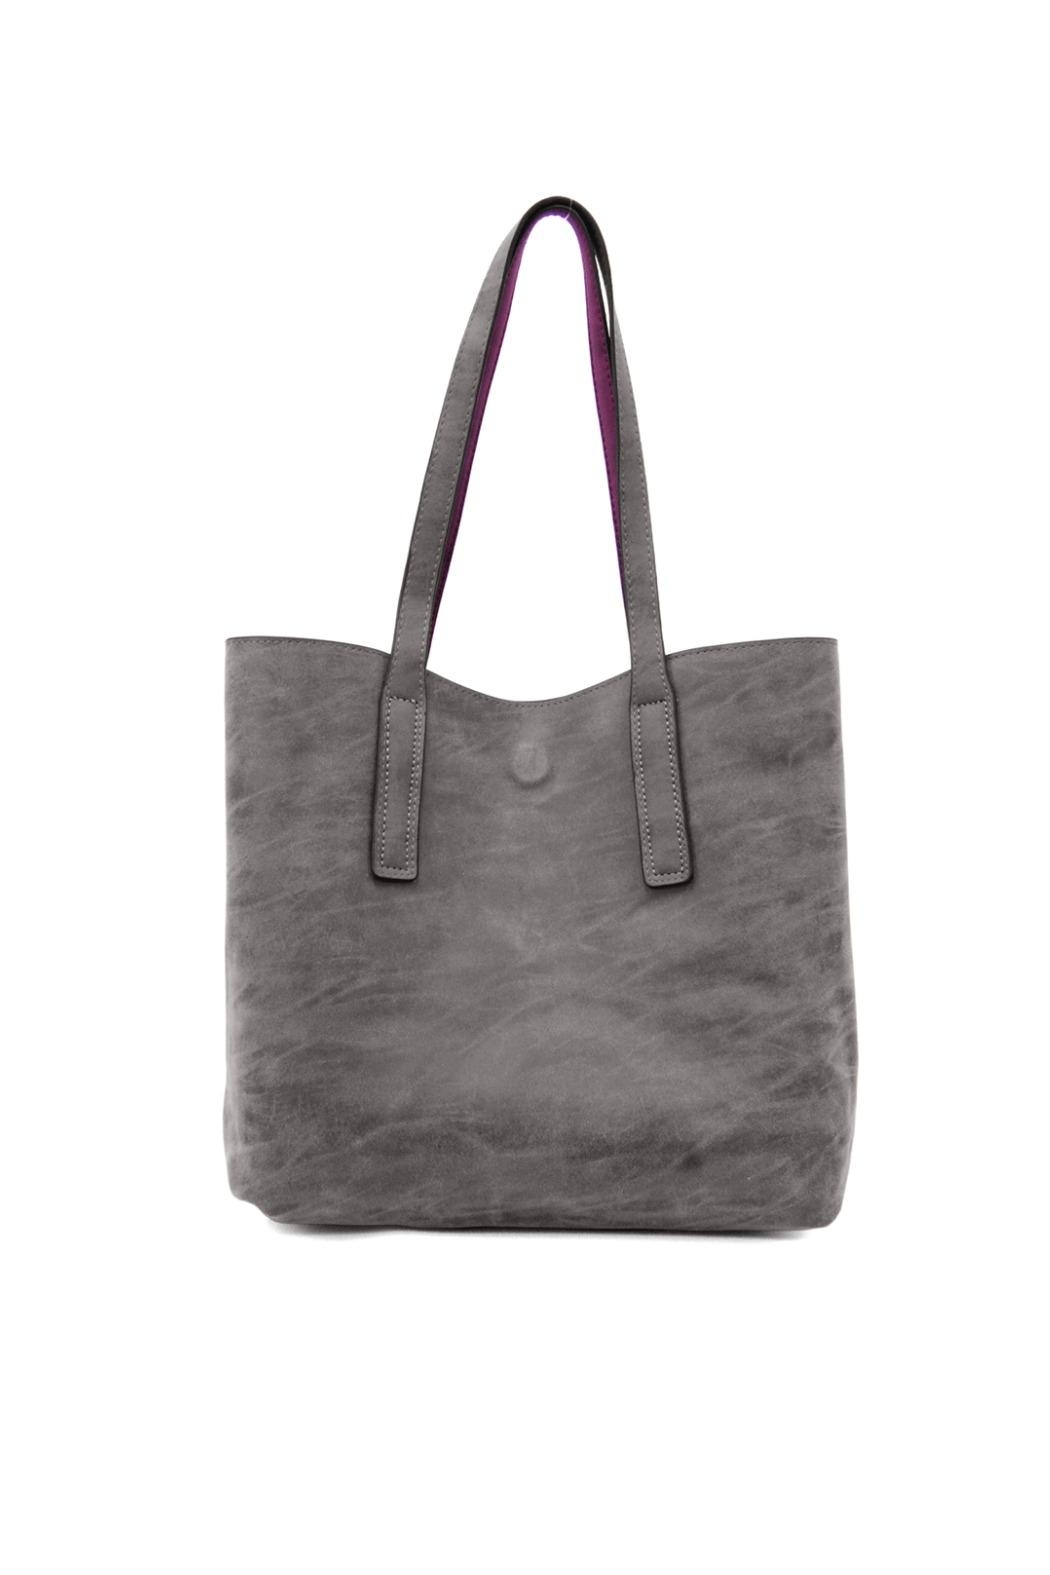 Joy Susan Accessories Carly Reversible Tote - Front Full Image